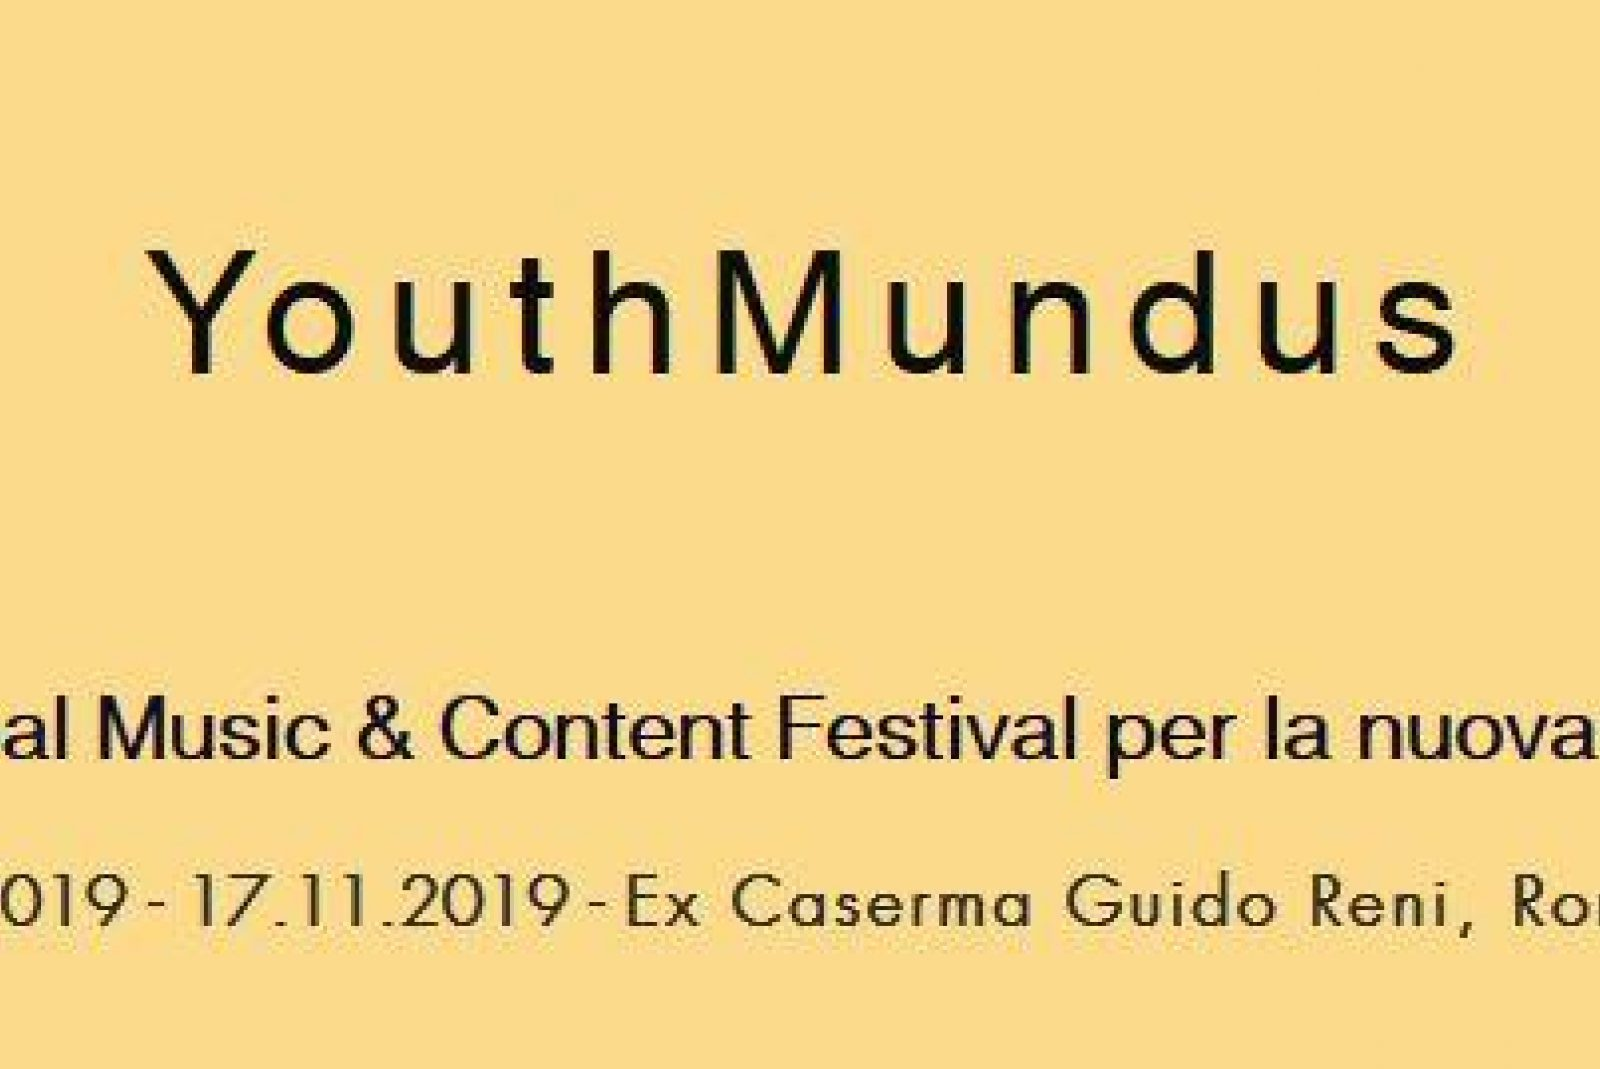 Youth Mundus, November 14-17, 2019